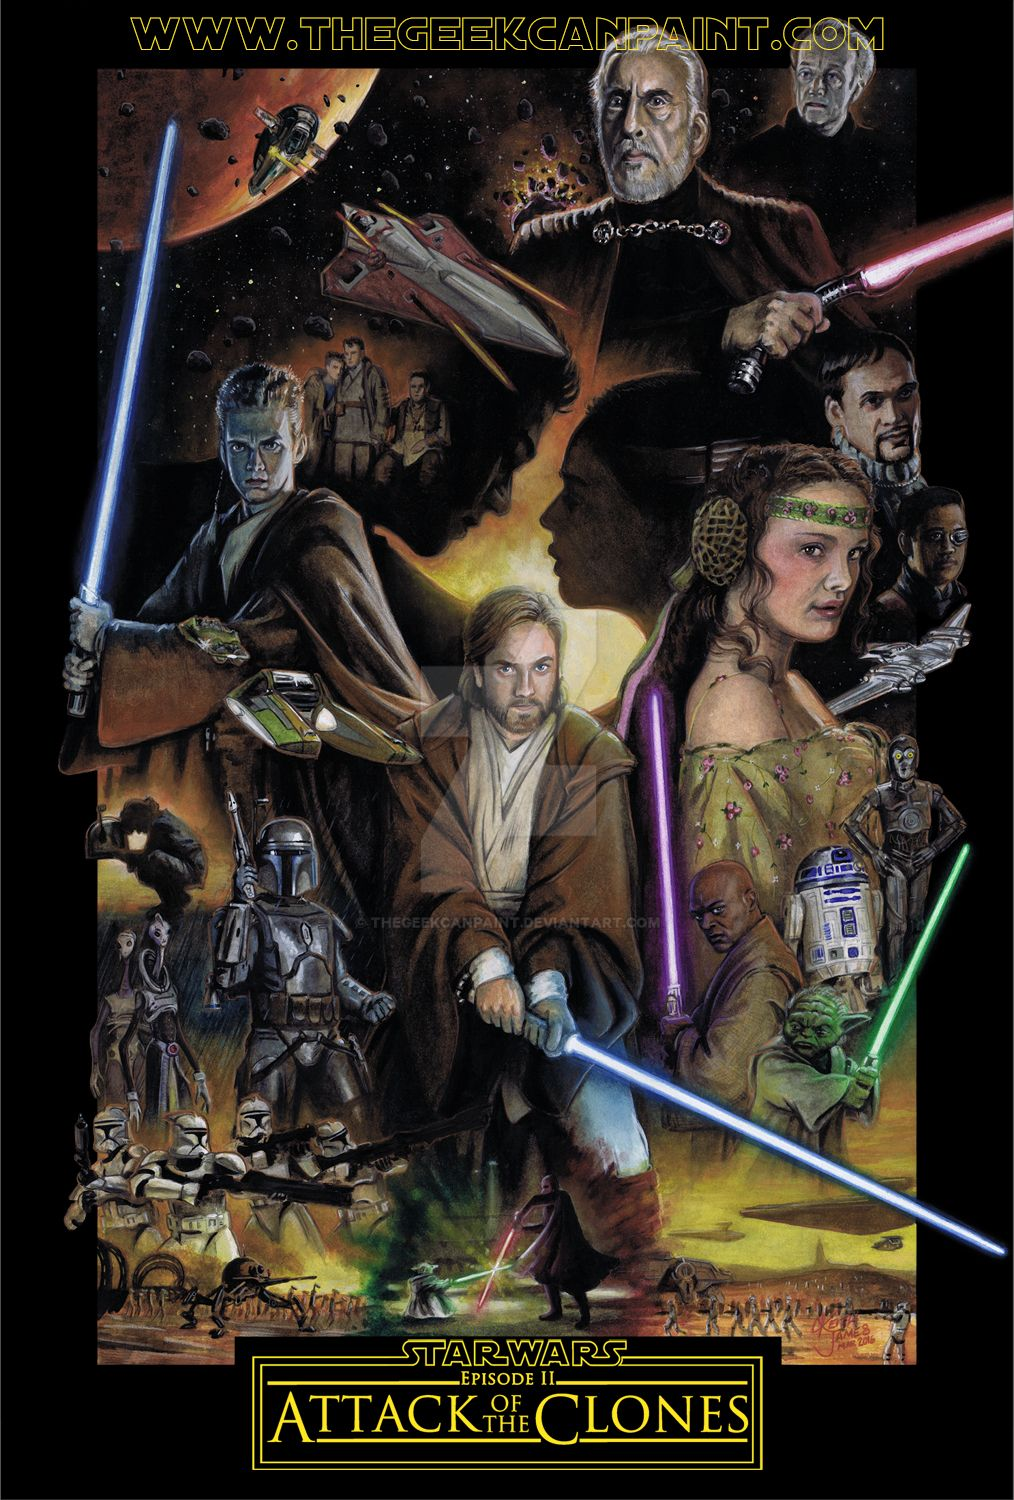 Star Wars II Attack of the Clones Movie HD free download 720p